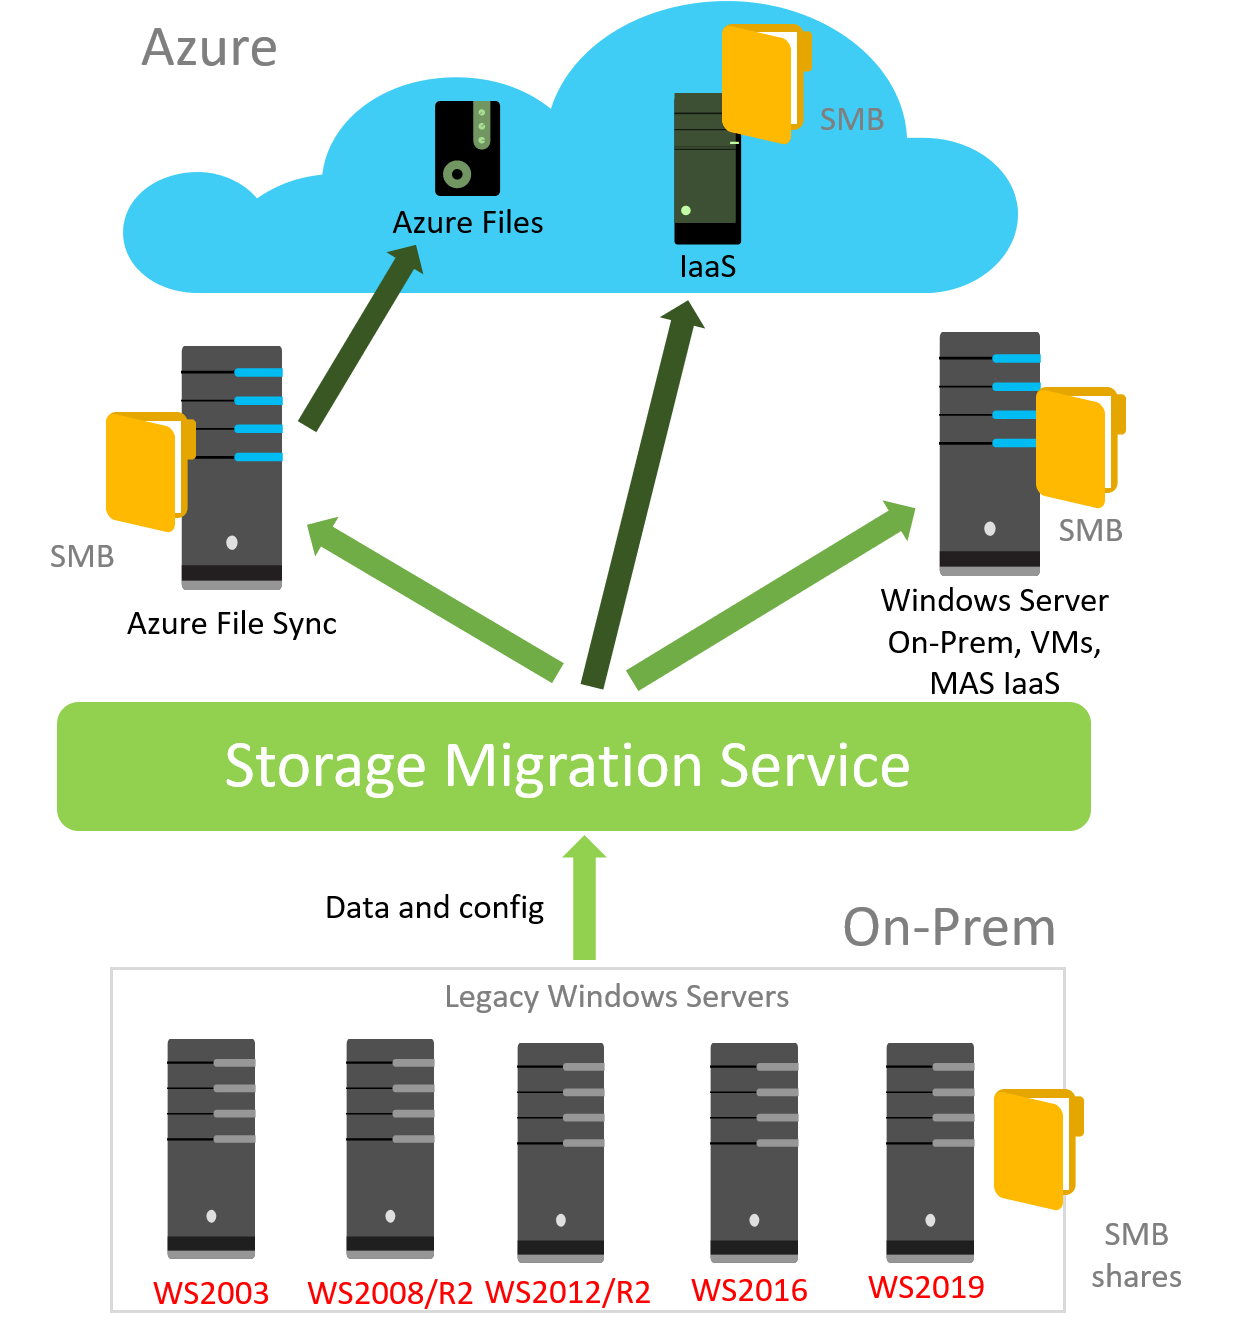 Windows Server 2019: the new service for the storage migration